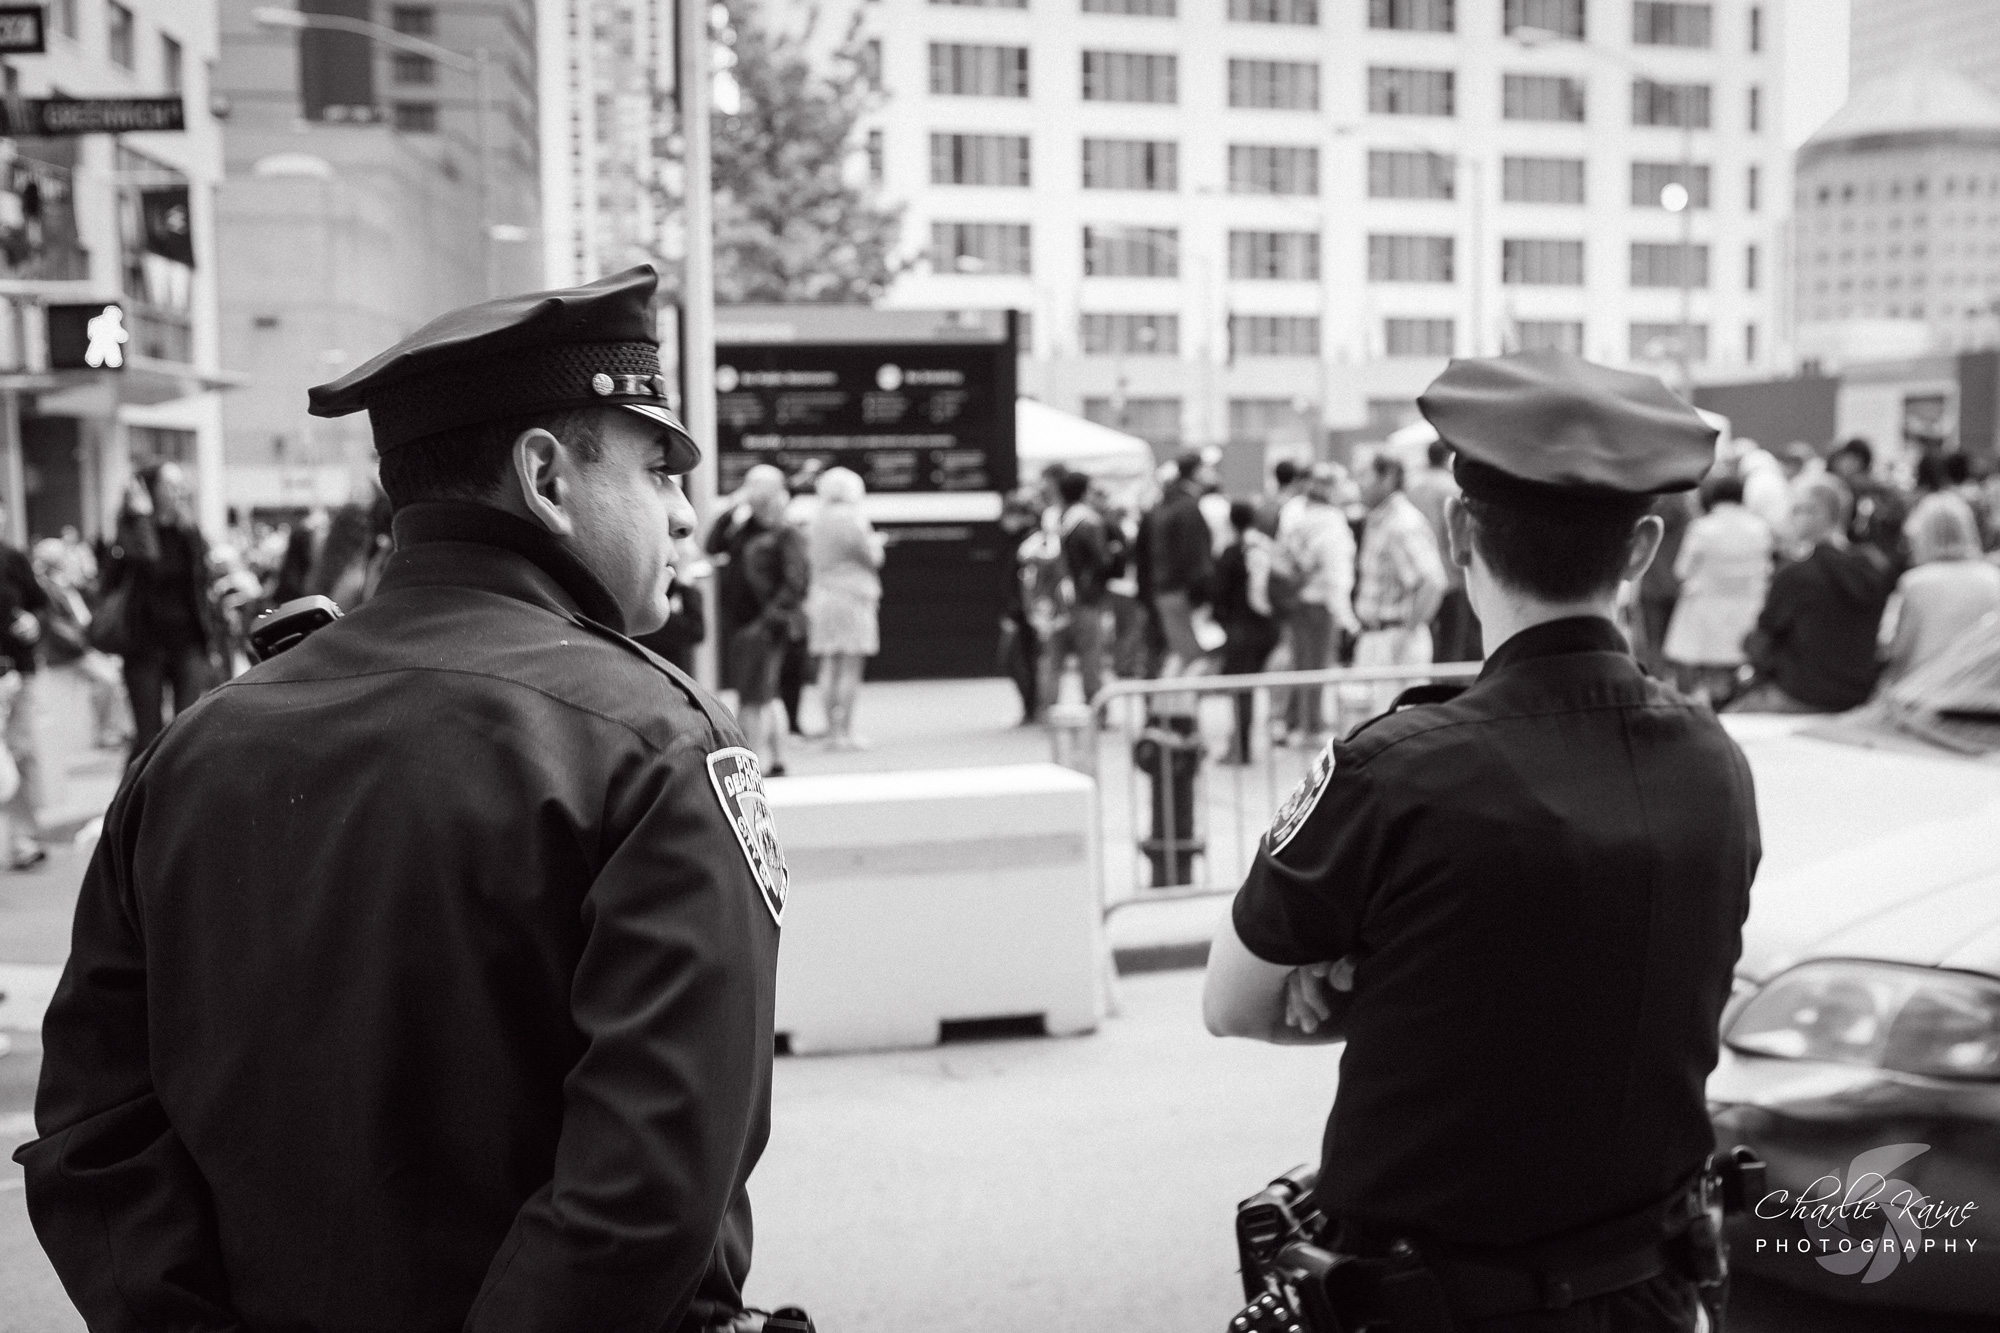 Police are ever present at the 911 Memorial | Charlie Kaine Photography